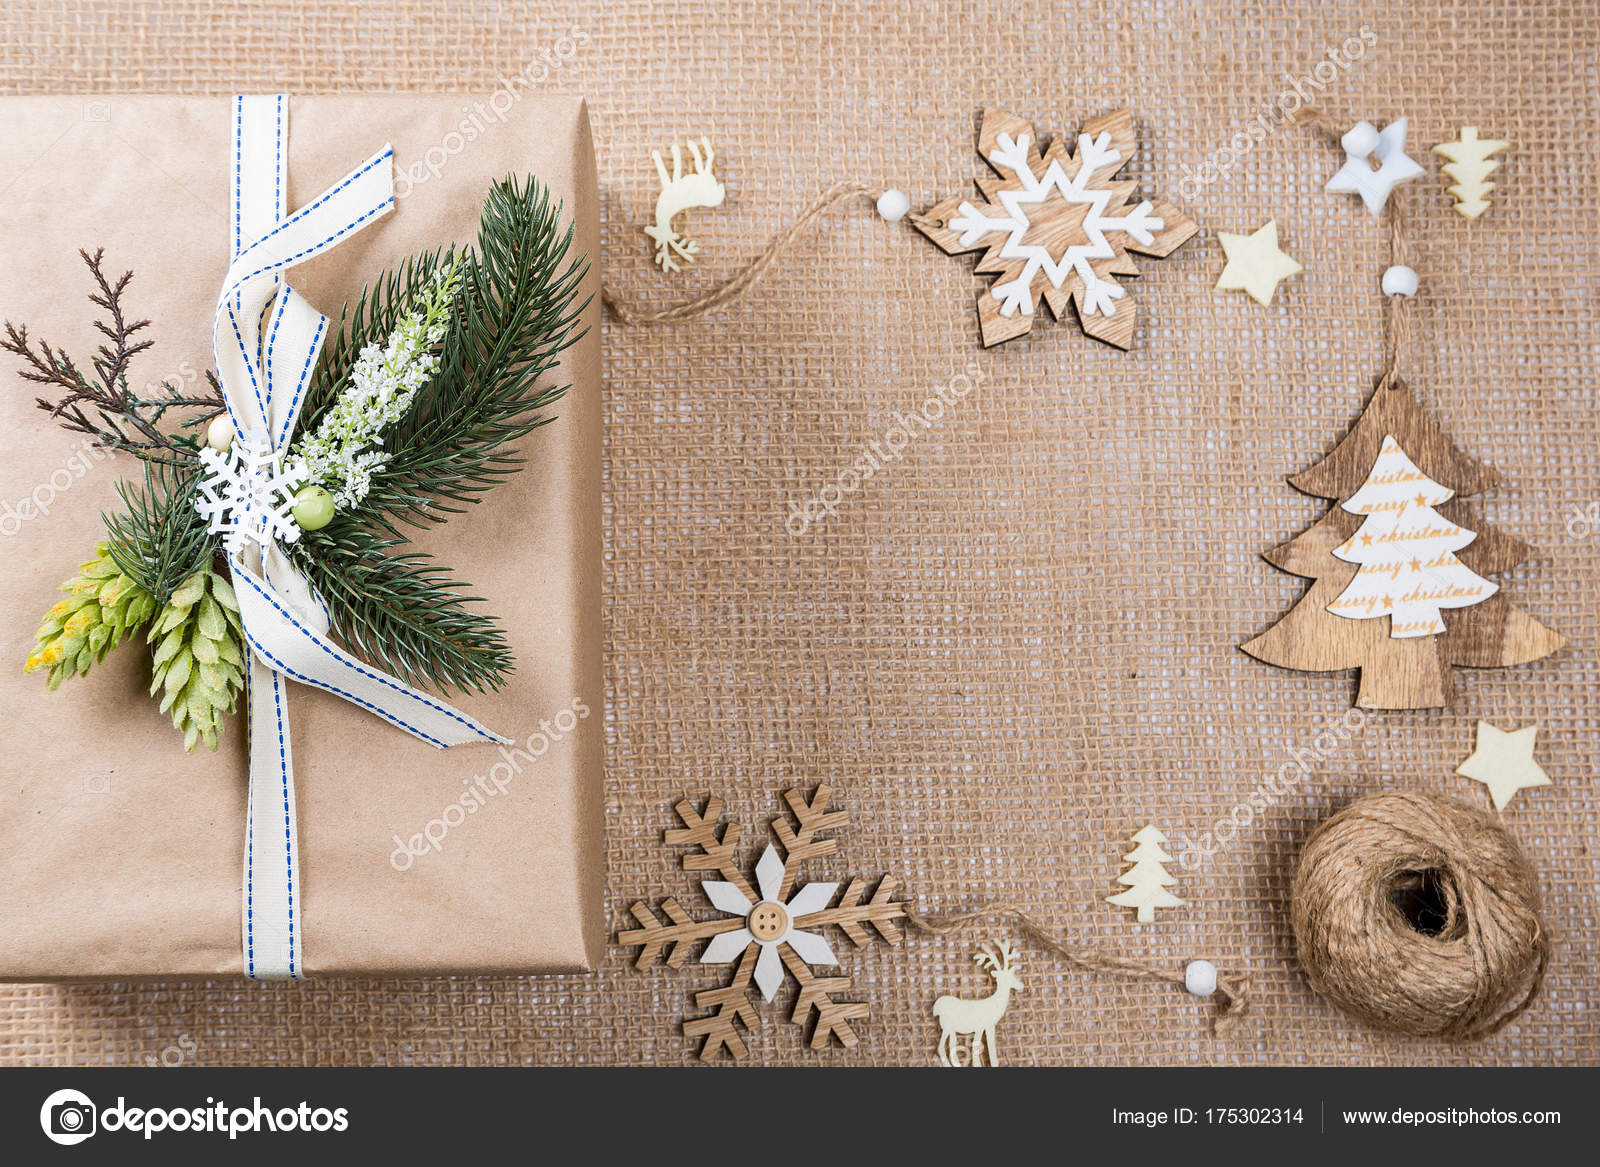 classy christmas gifts box presents in brown paper with toys and new year decor on burlap merry christmas card background photo by lilichka2015